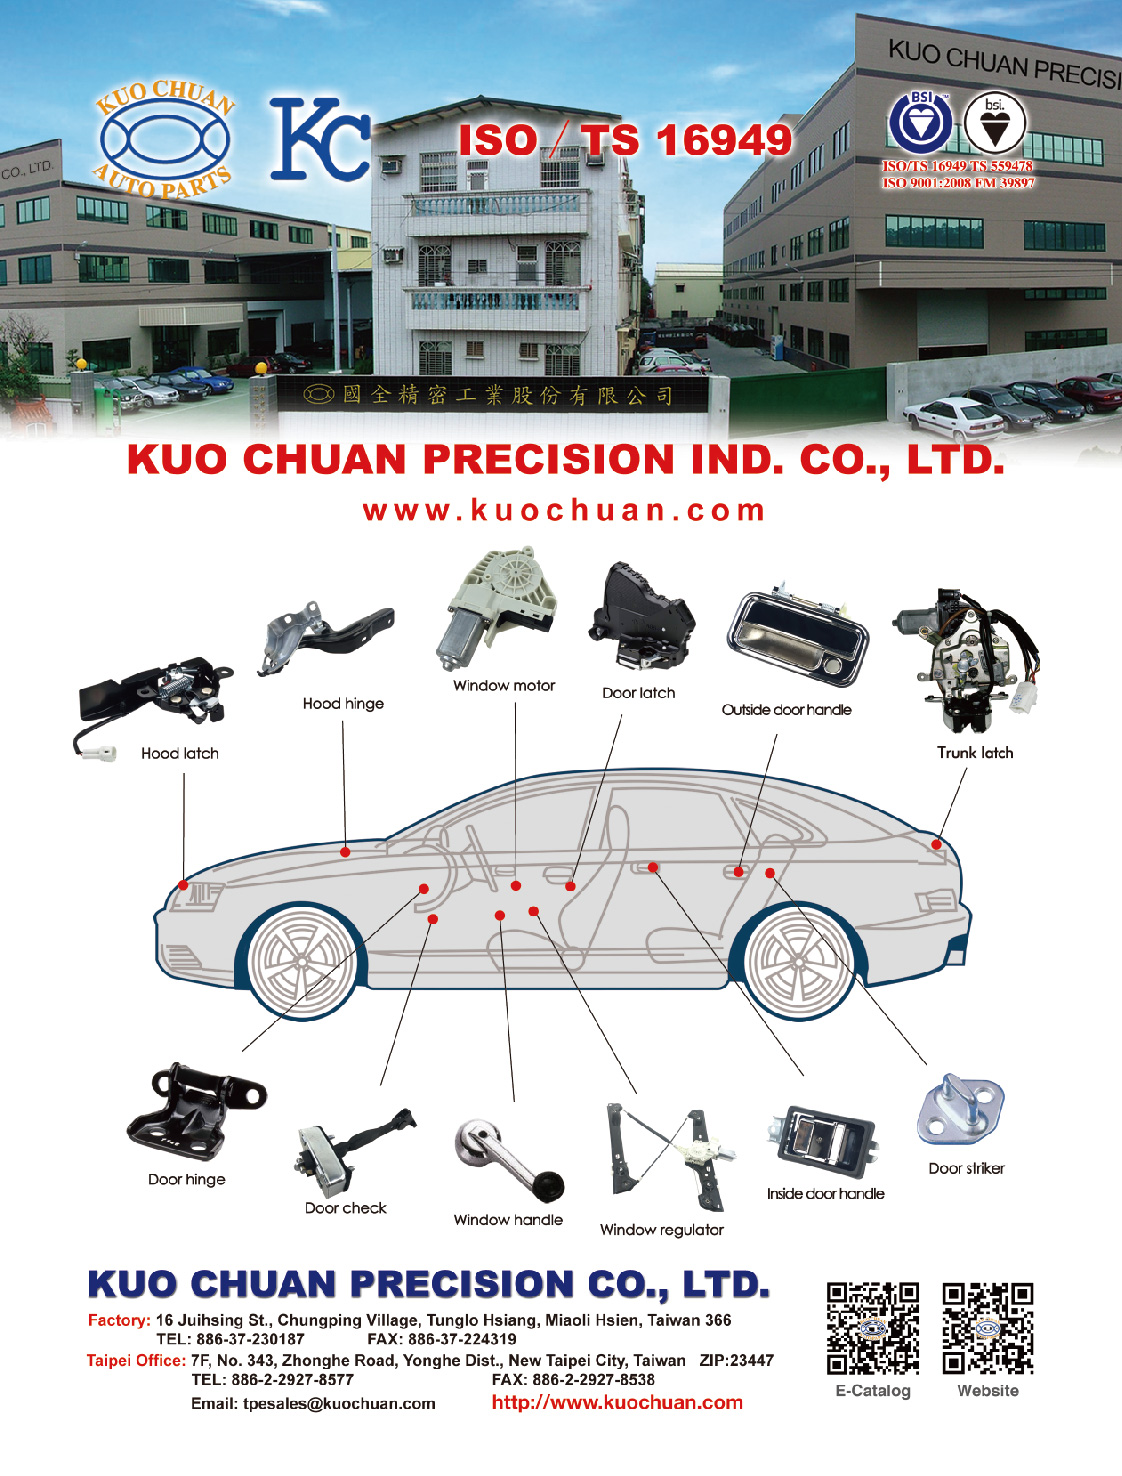 KUO CHUAN PRECISION IND. CO., LTD.